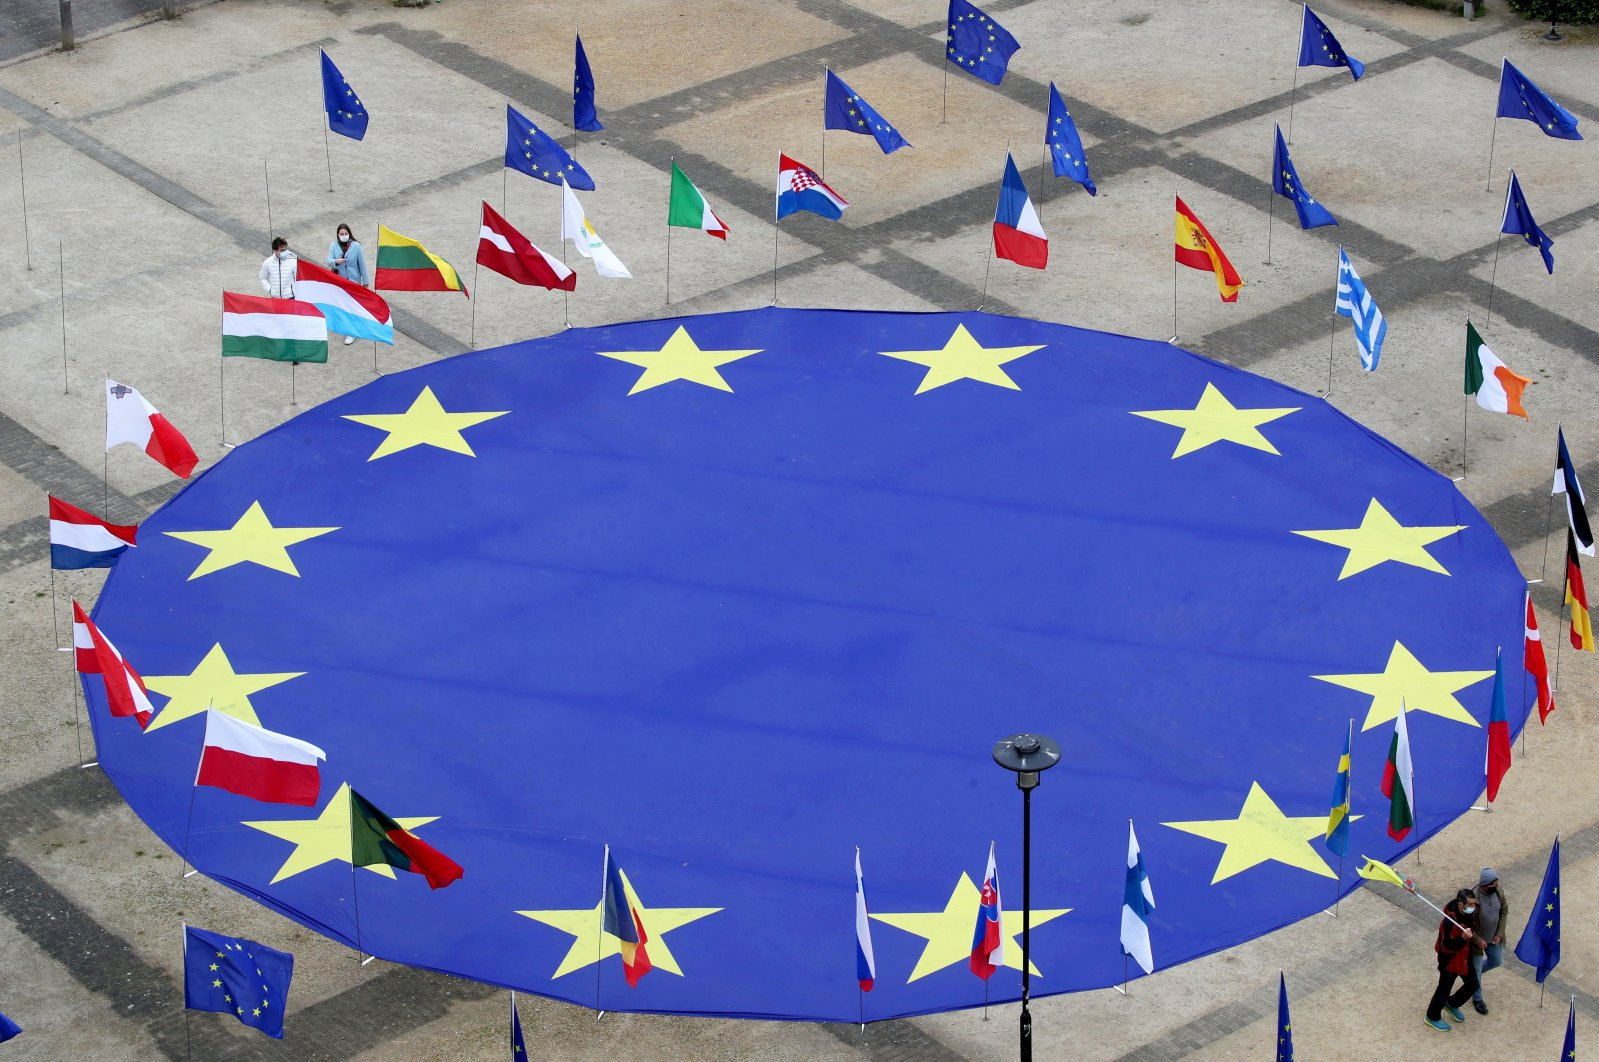 A large European Union flag lies at the center of Schuman Square outside European Commission headquarters in Brussels, Belgium, May 8, 2021. (Reuters Photo)